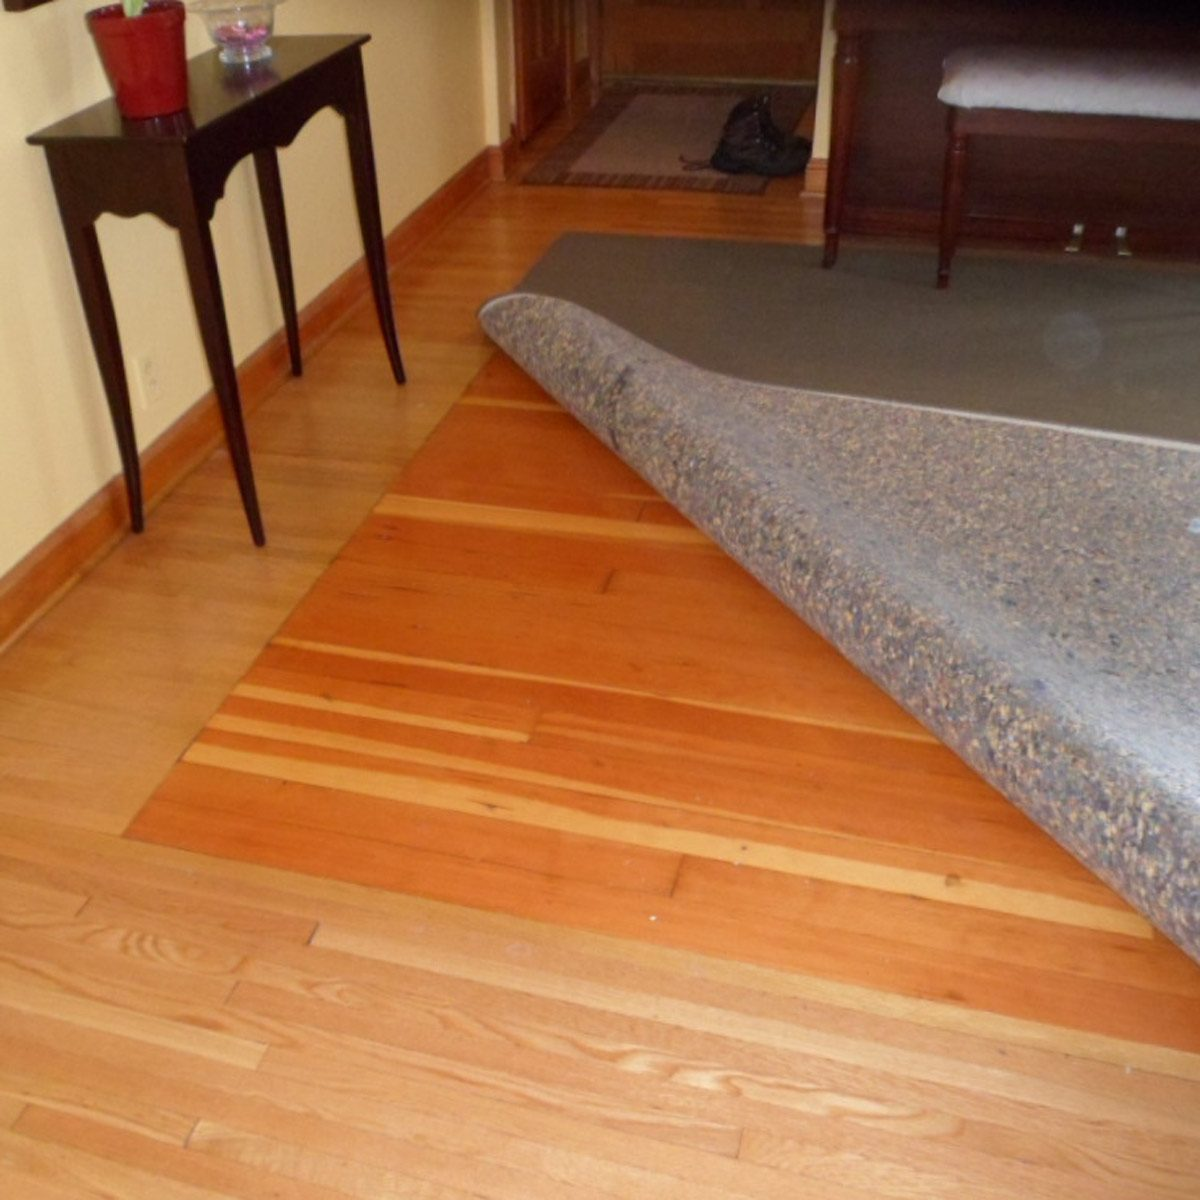 One way to save money on flooring